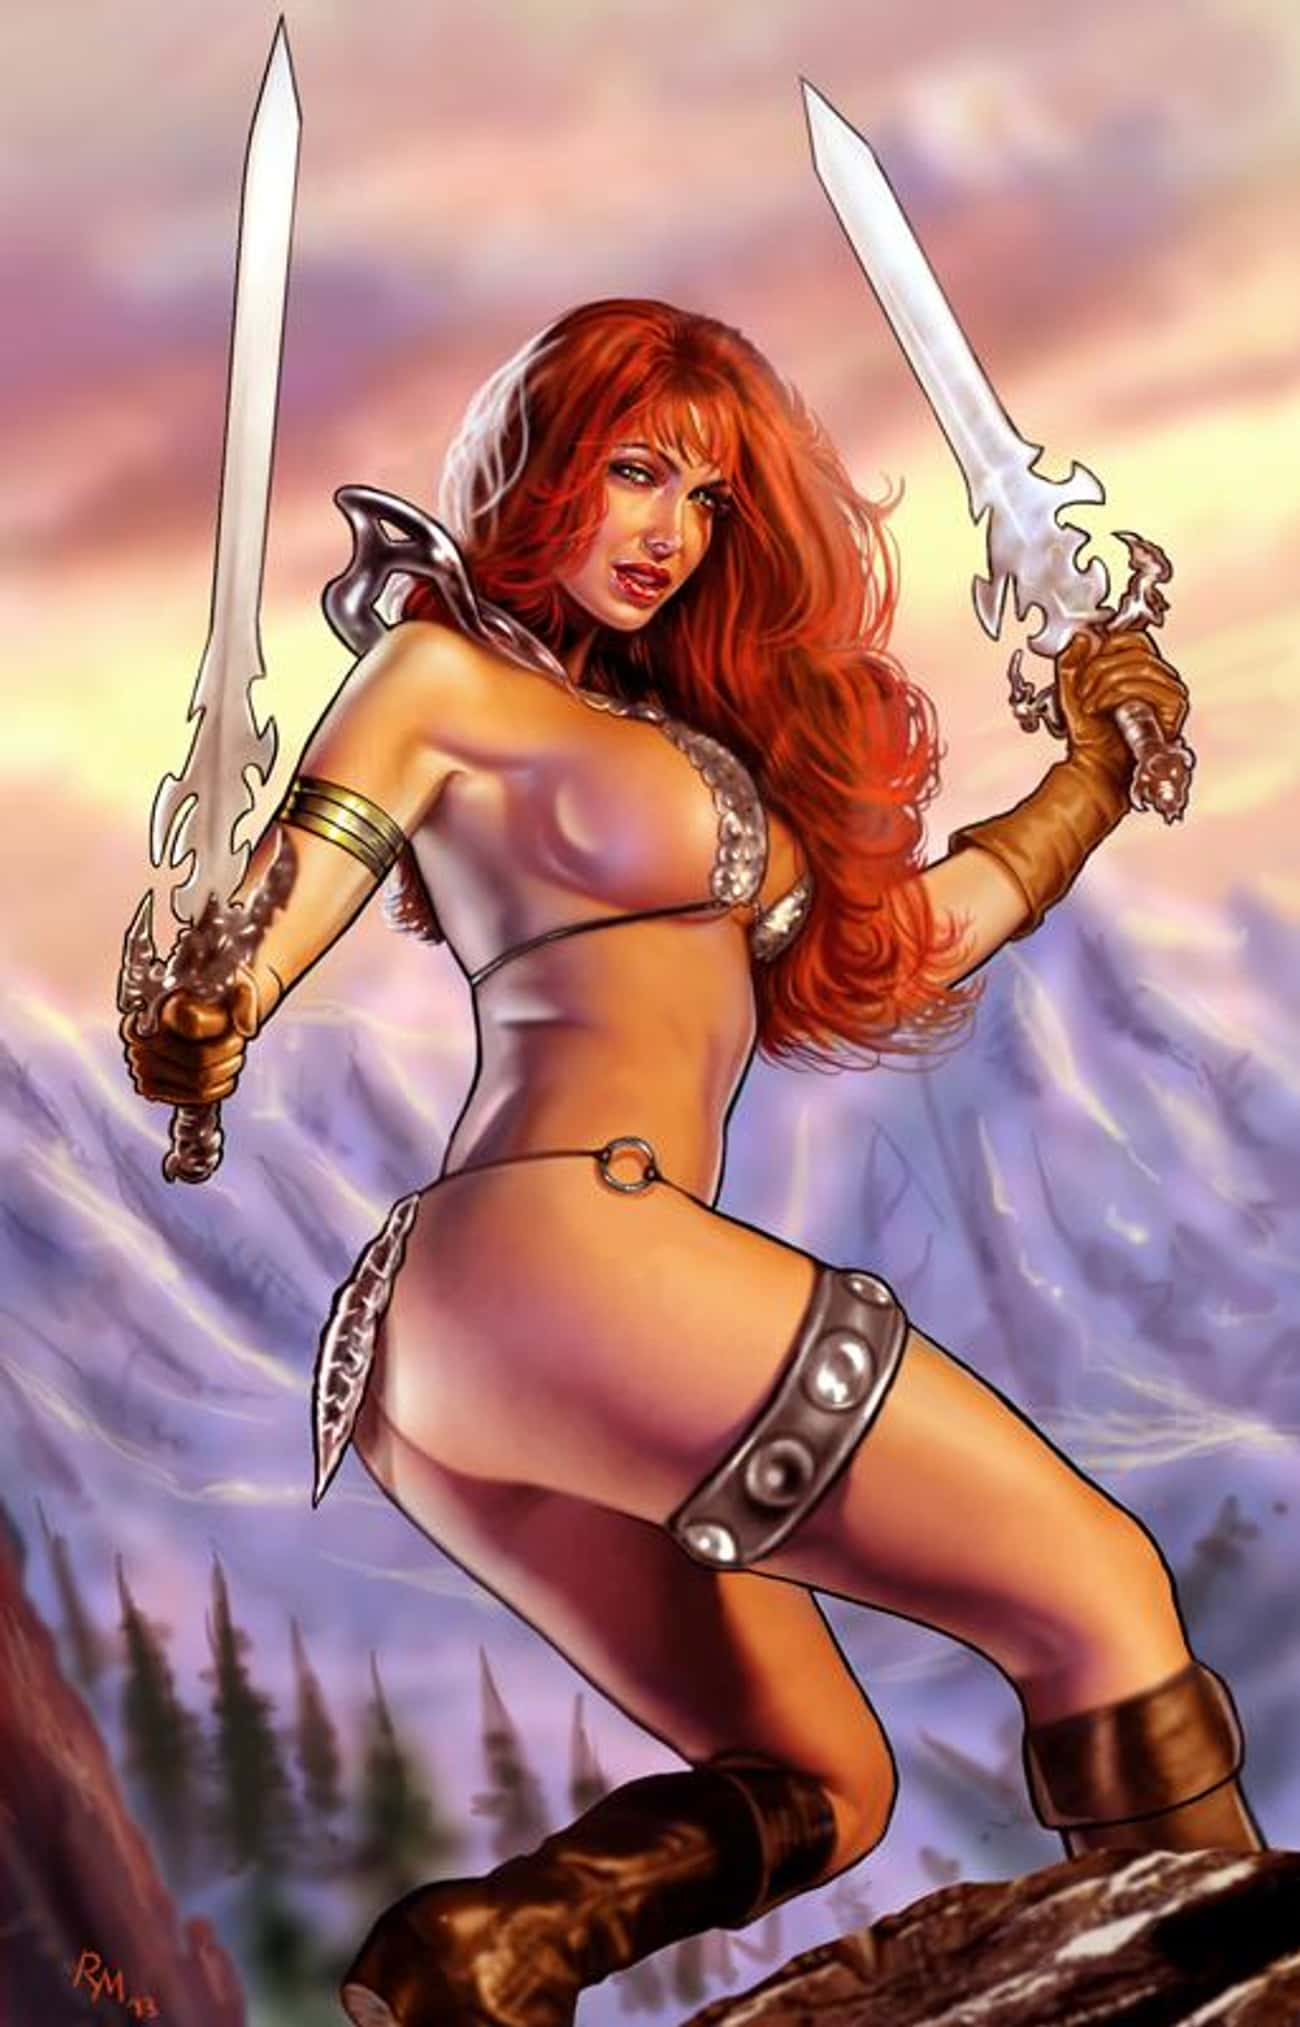 Red Sonja is listed (or ranked) 4 on the list The Most RevealingSuperheroine Costumes In Comics